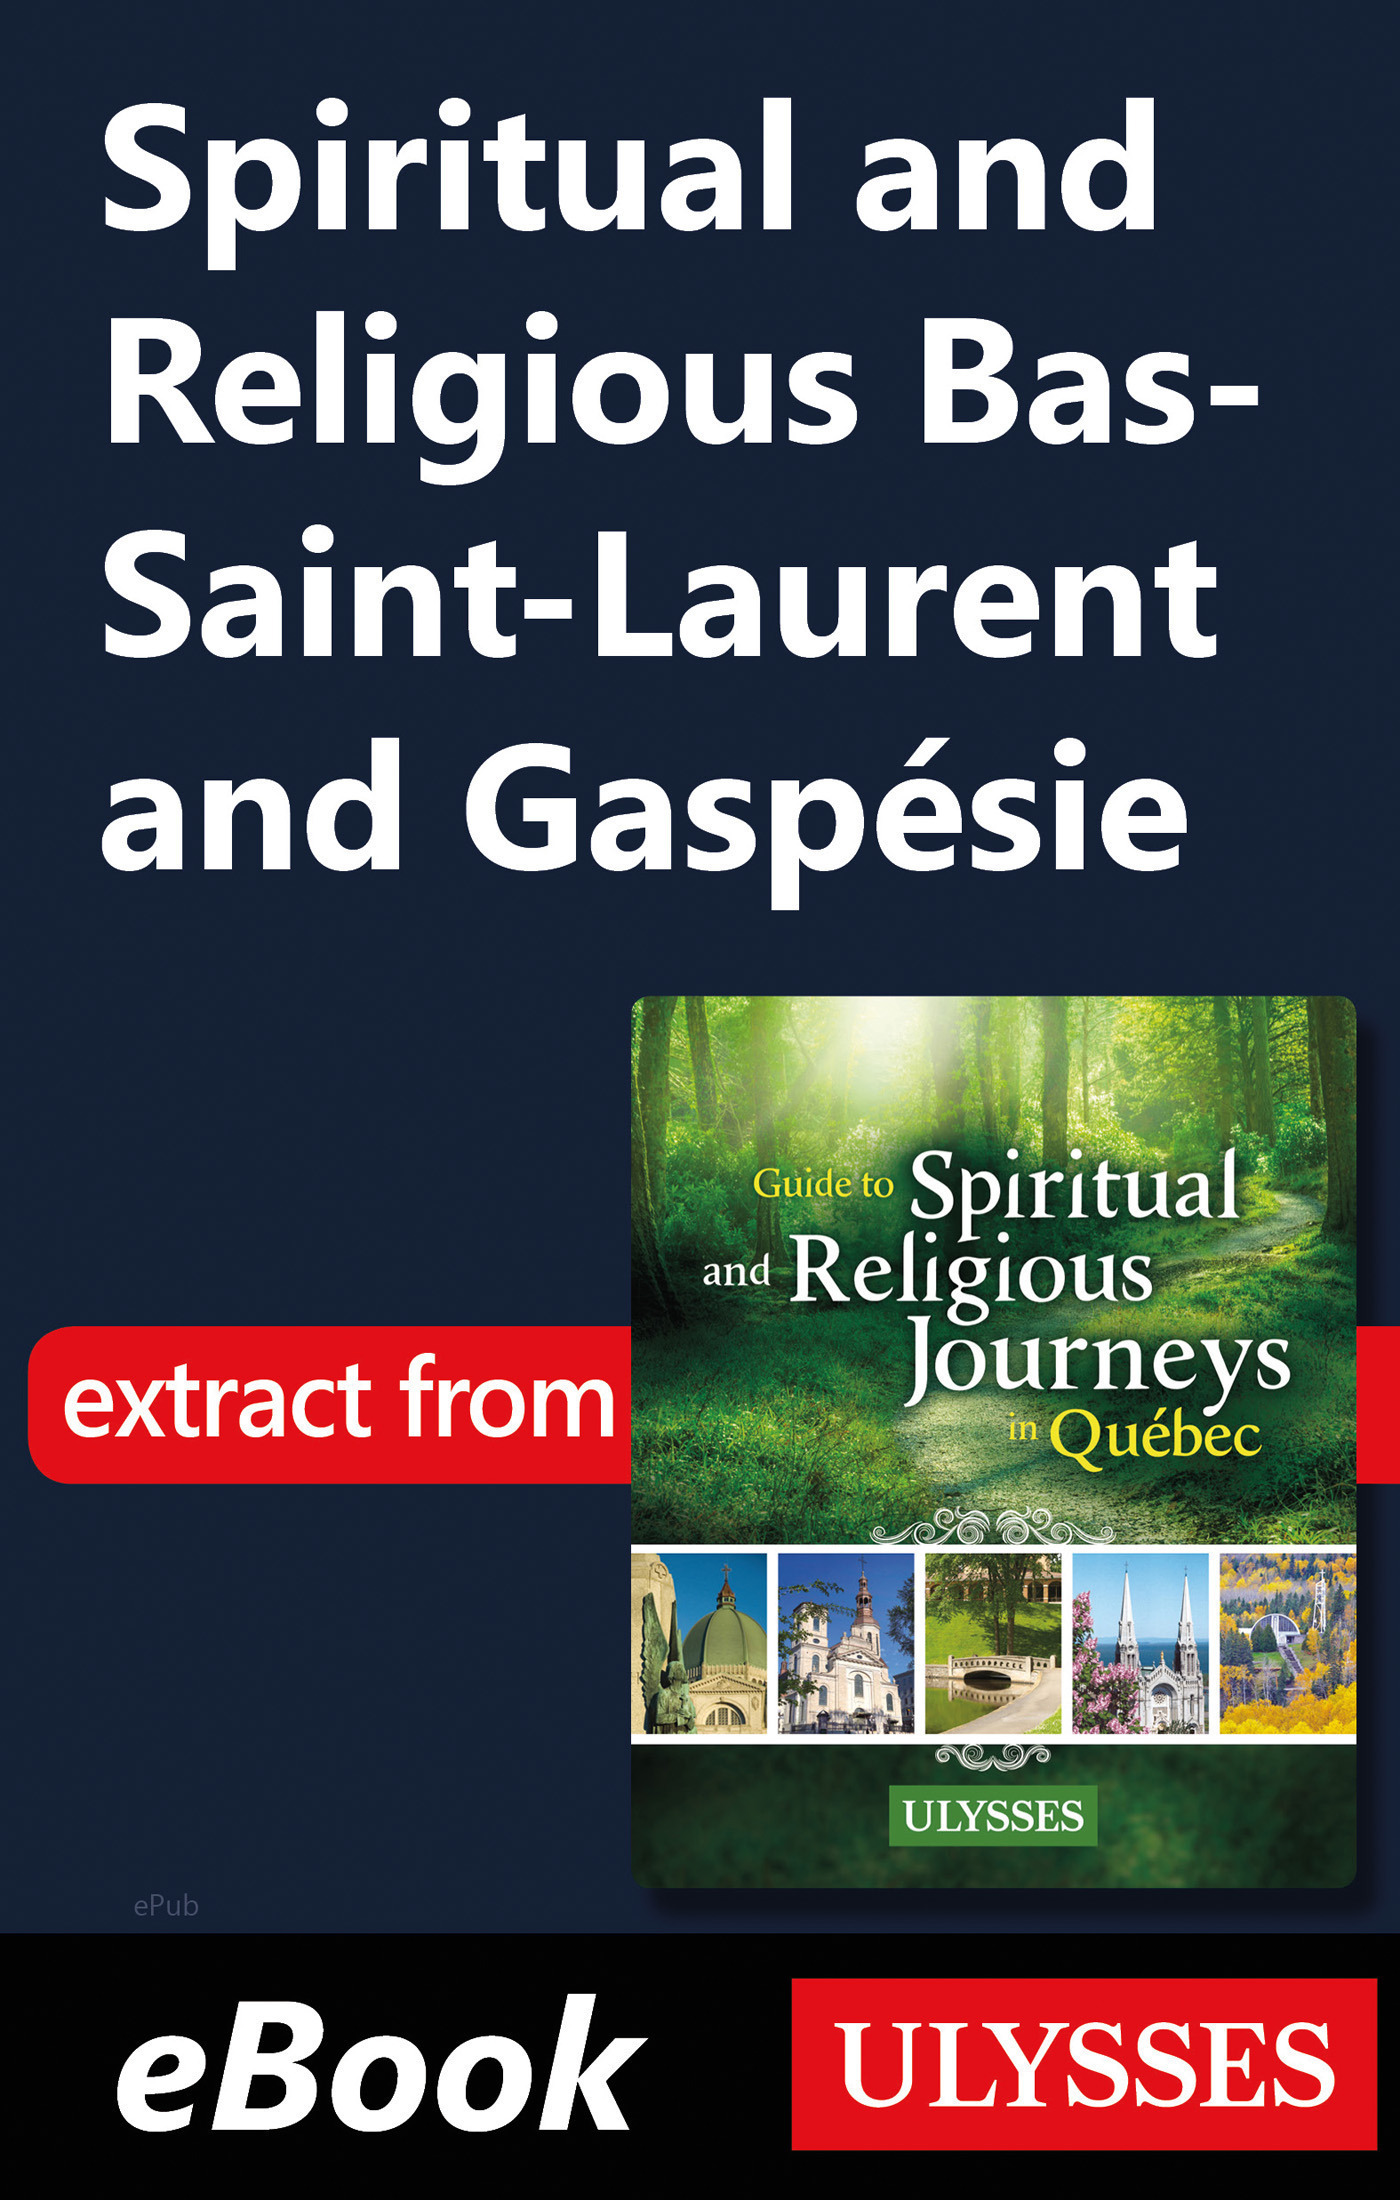 Spiritual and Religious Bas-Saint-Laurent and Gaspésie